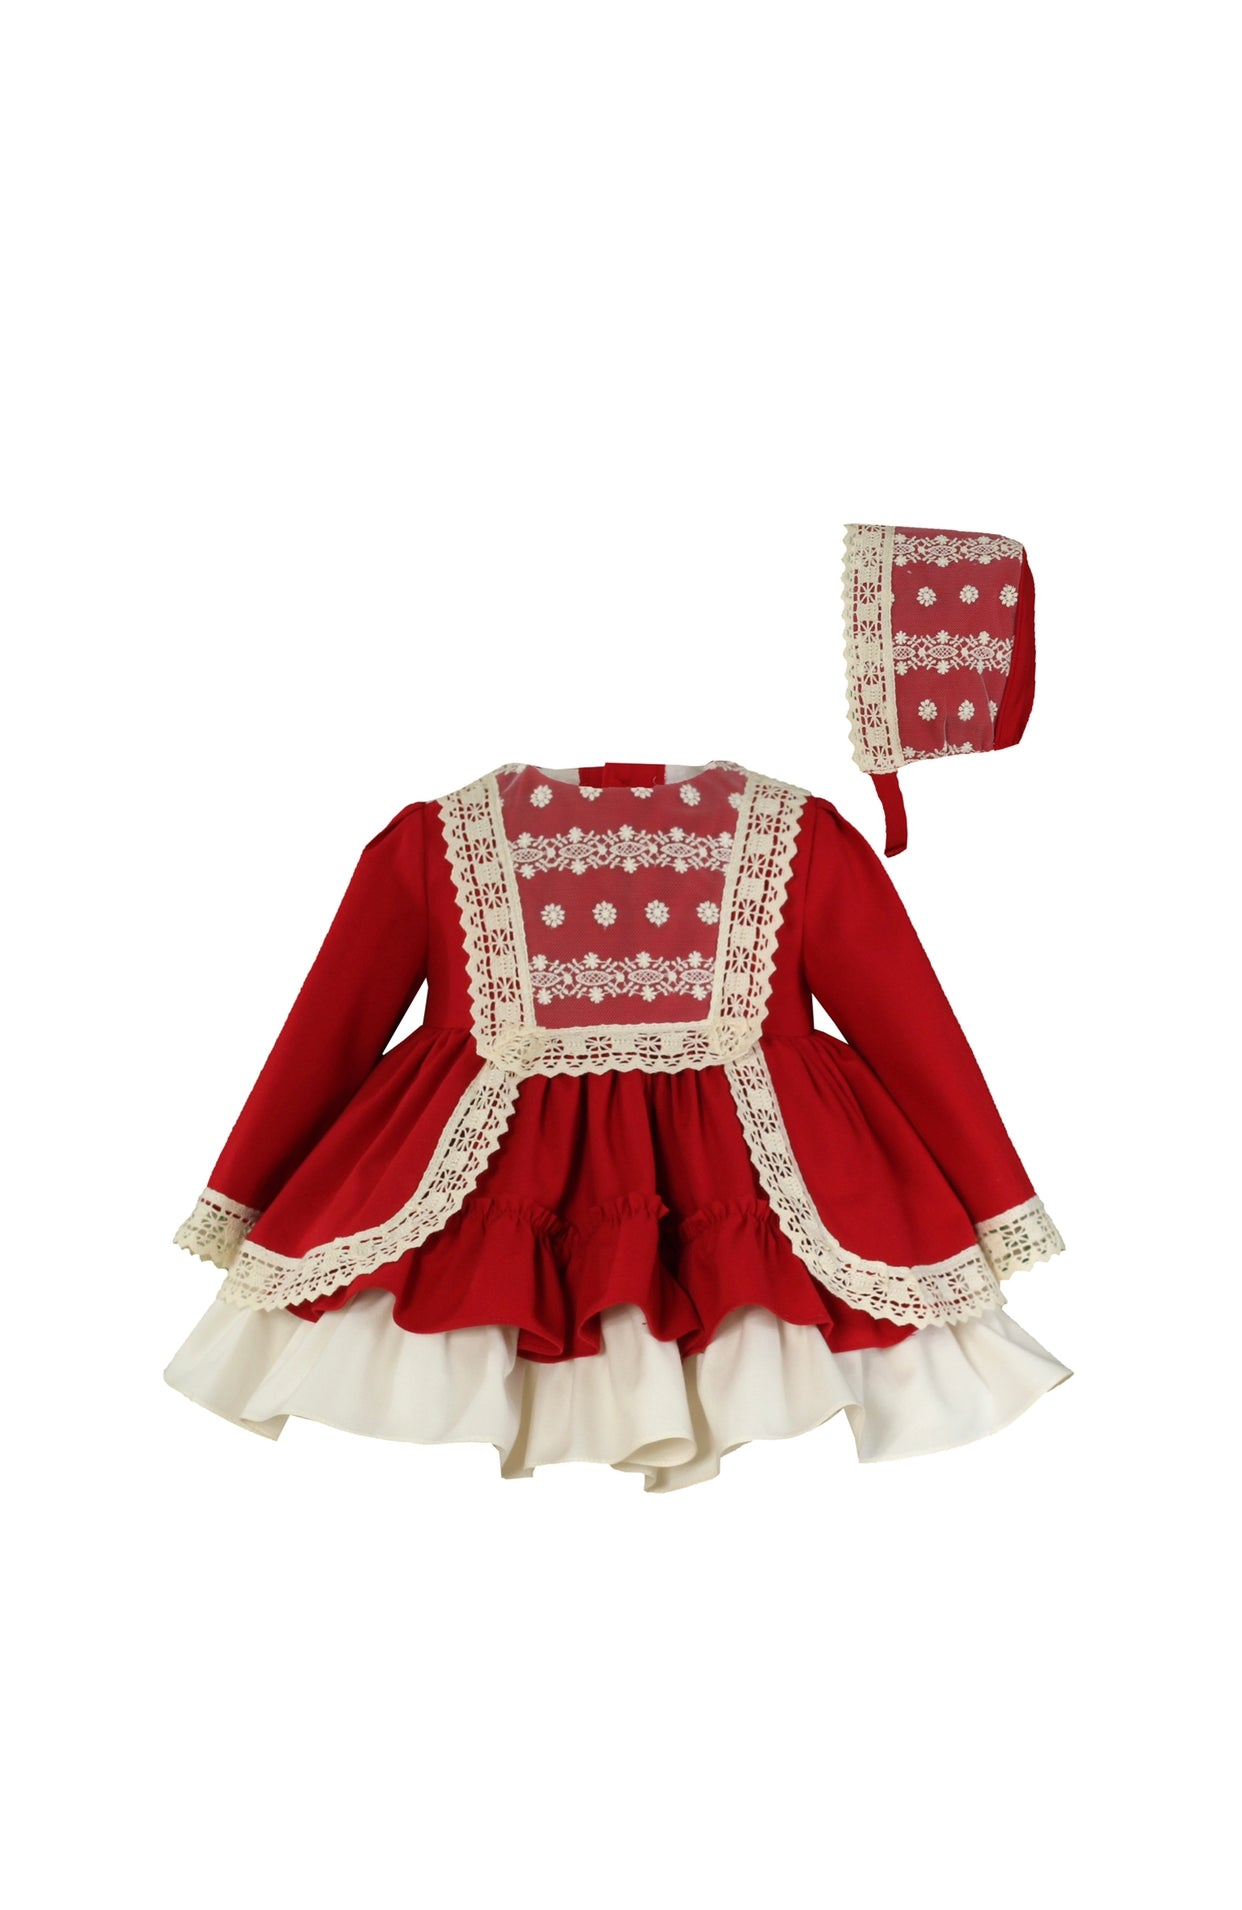 MIRANDA Red Puffball dress and bonnet set